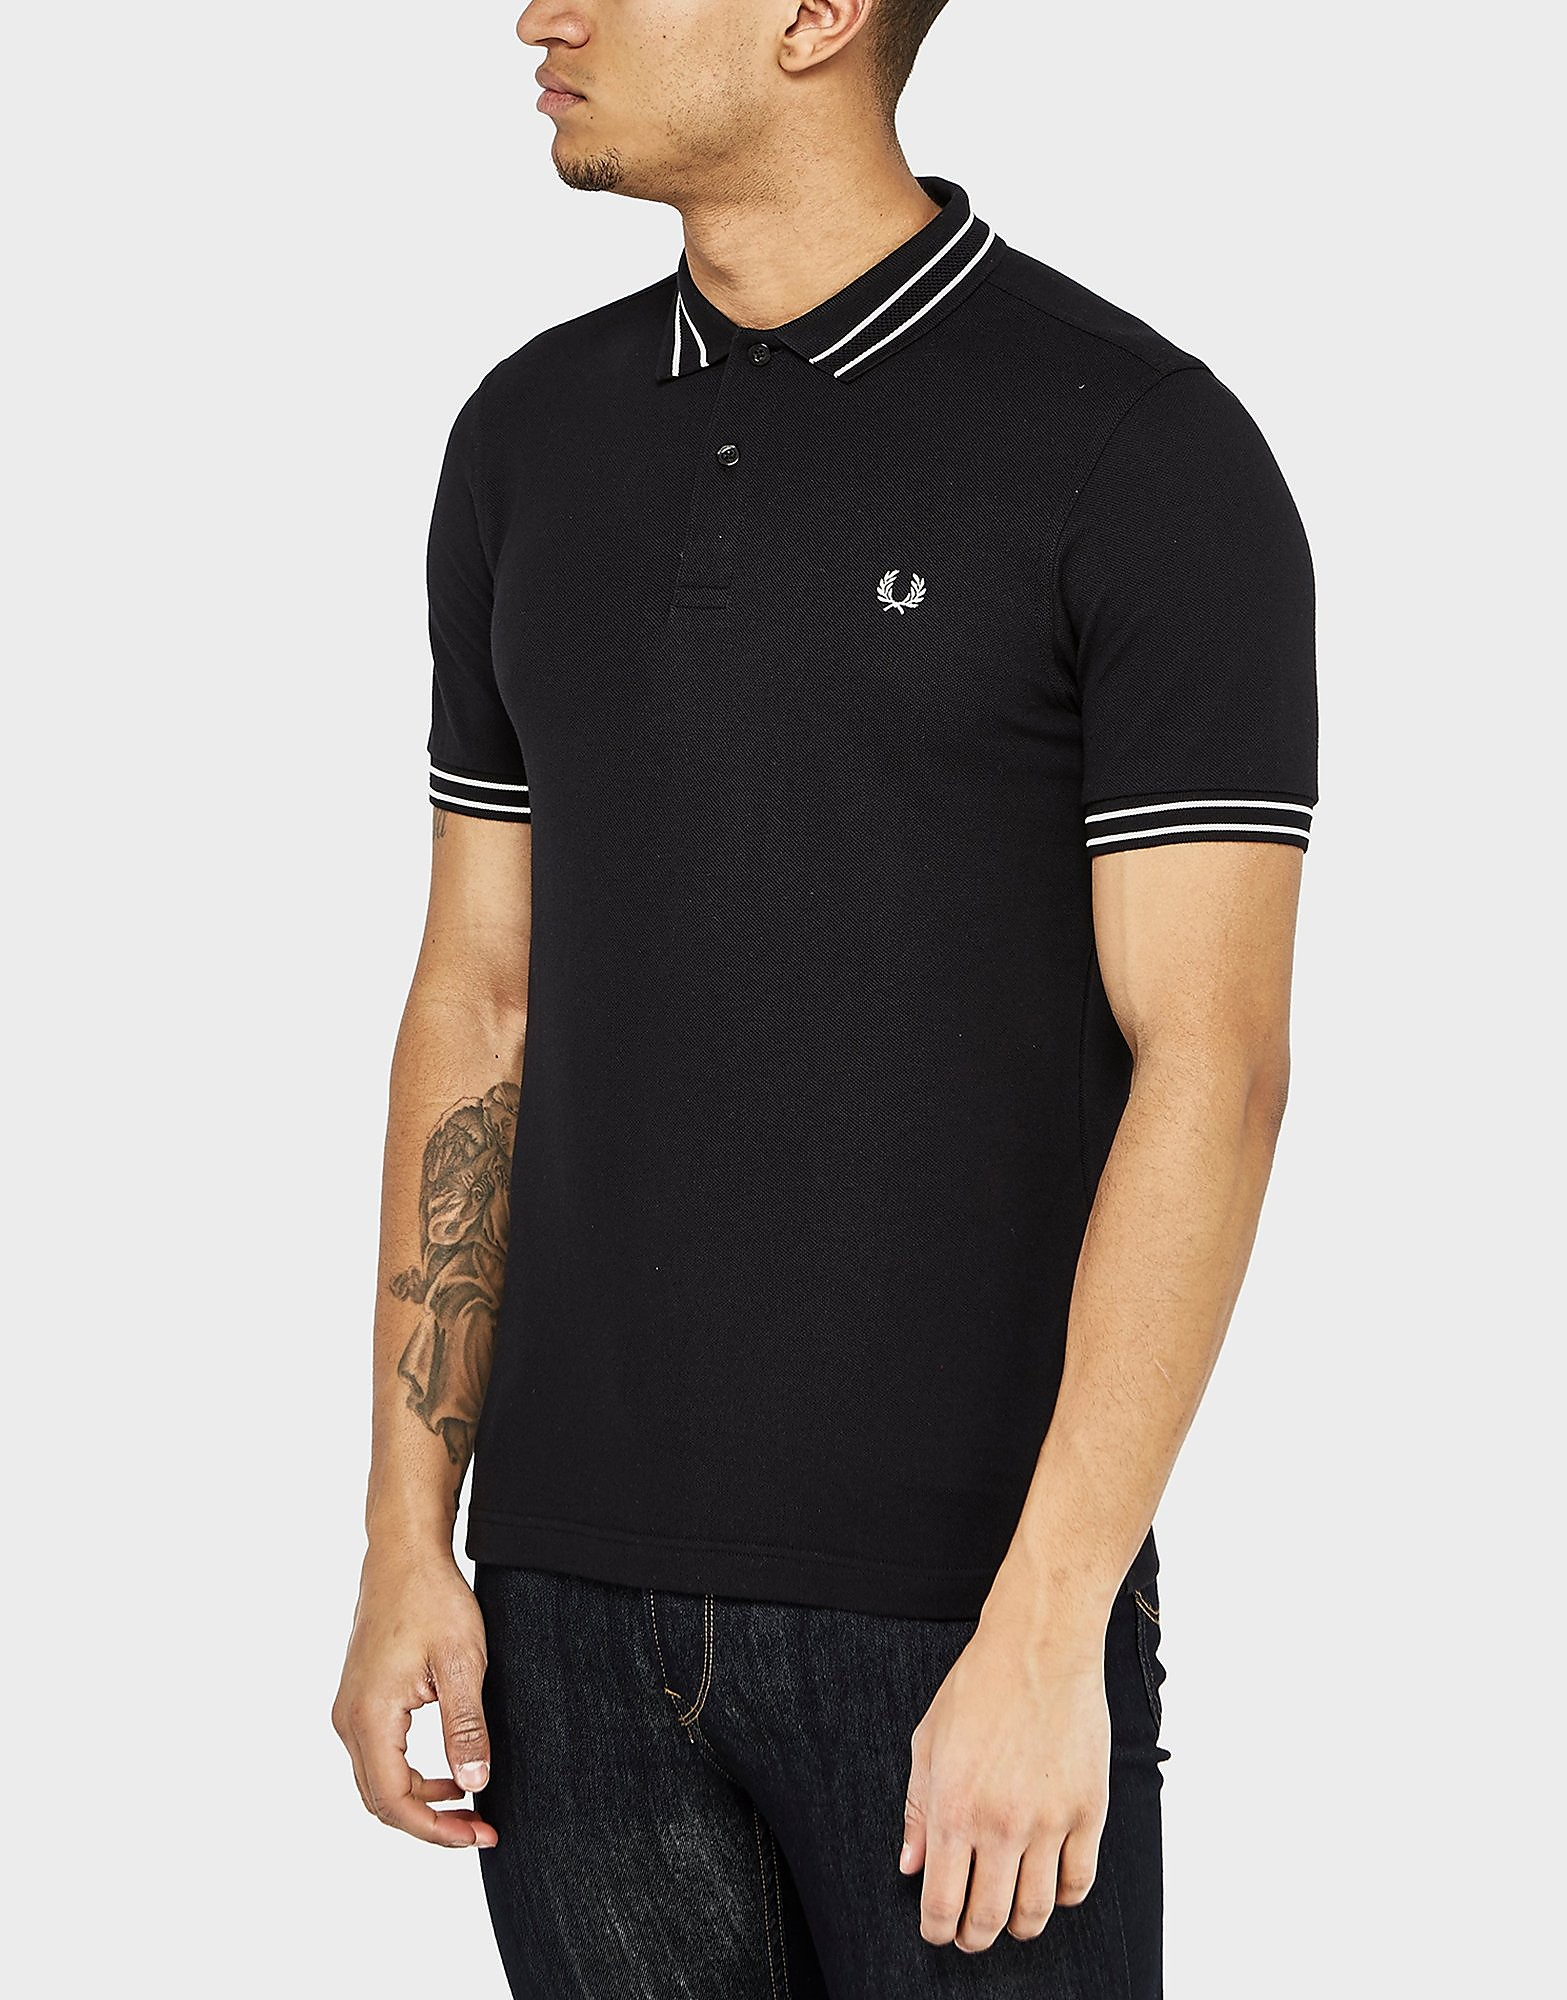 Fred Perry Tramline Polo Shirt  Black Black